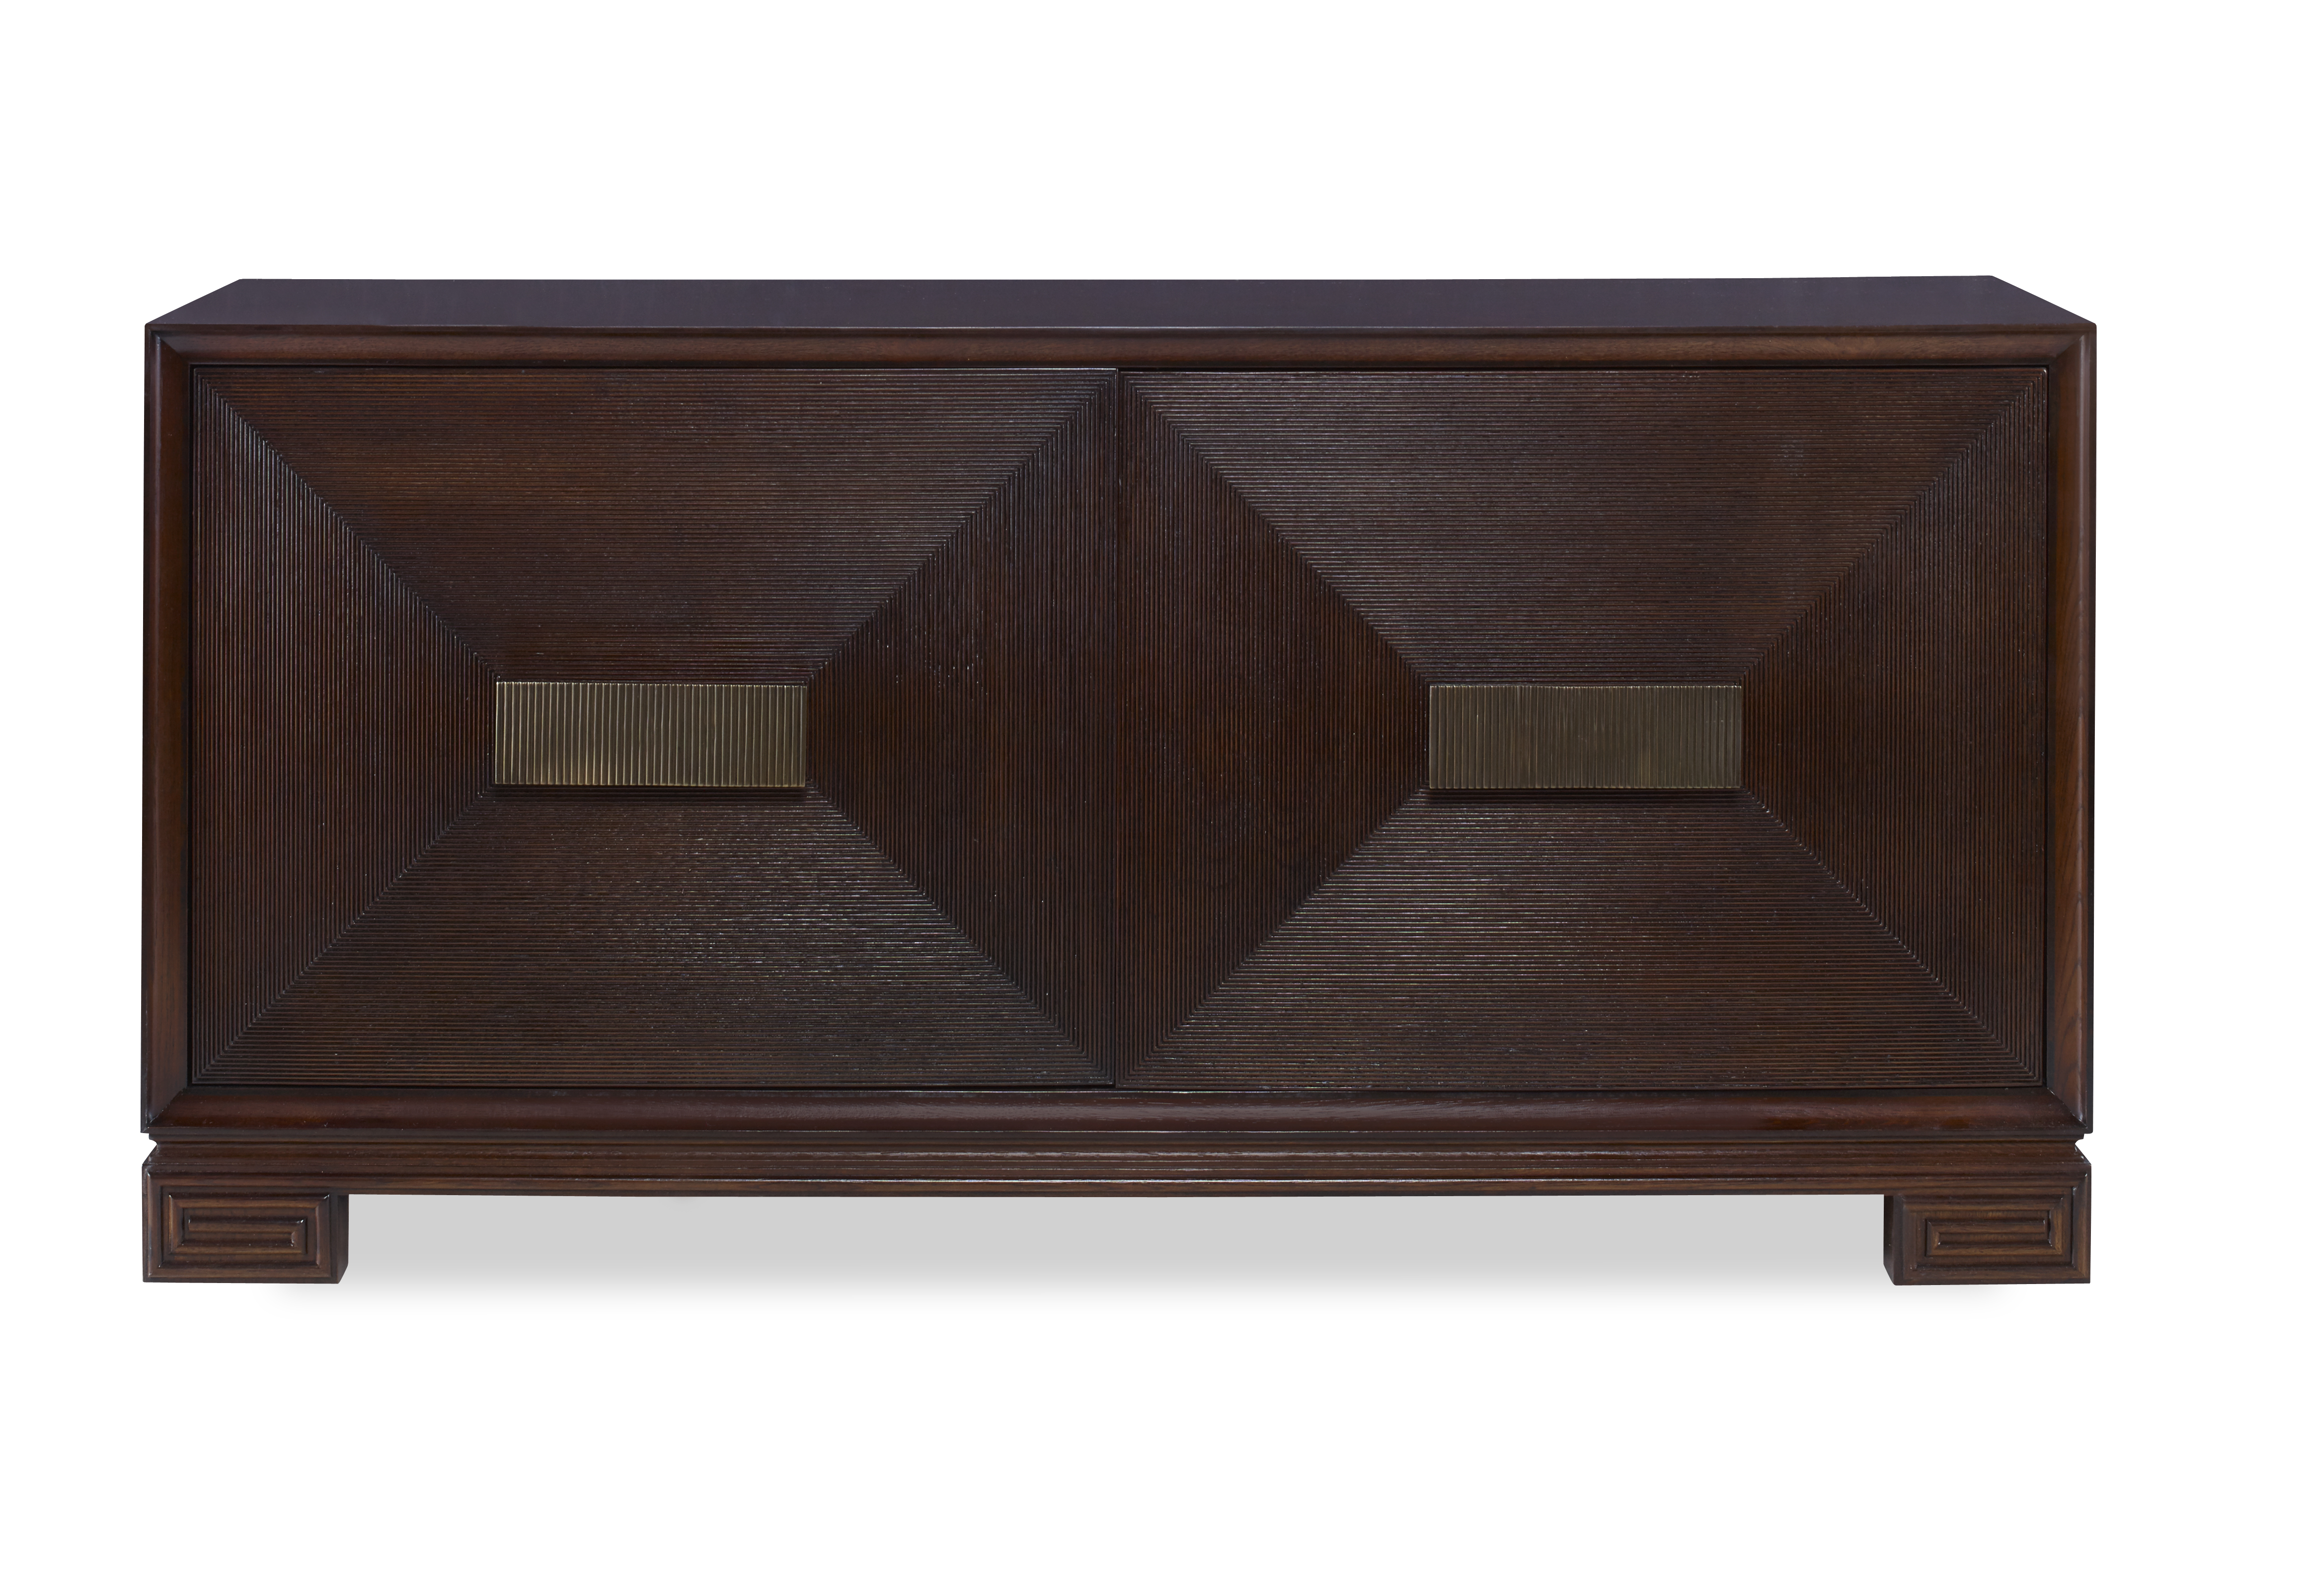 Century Furniture Oscar door chest